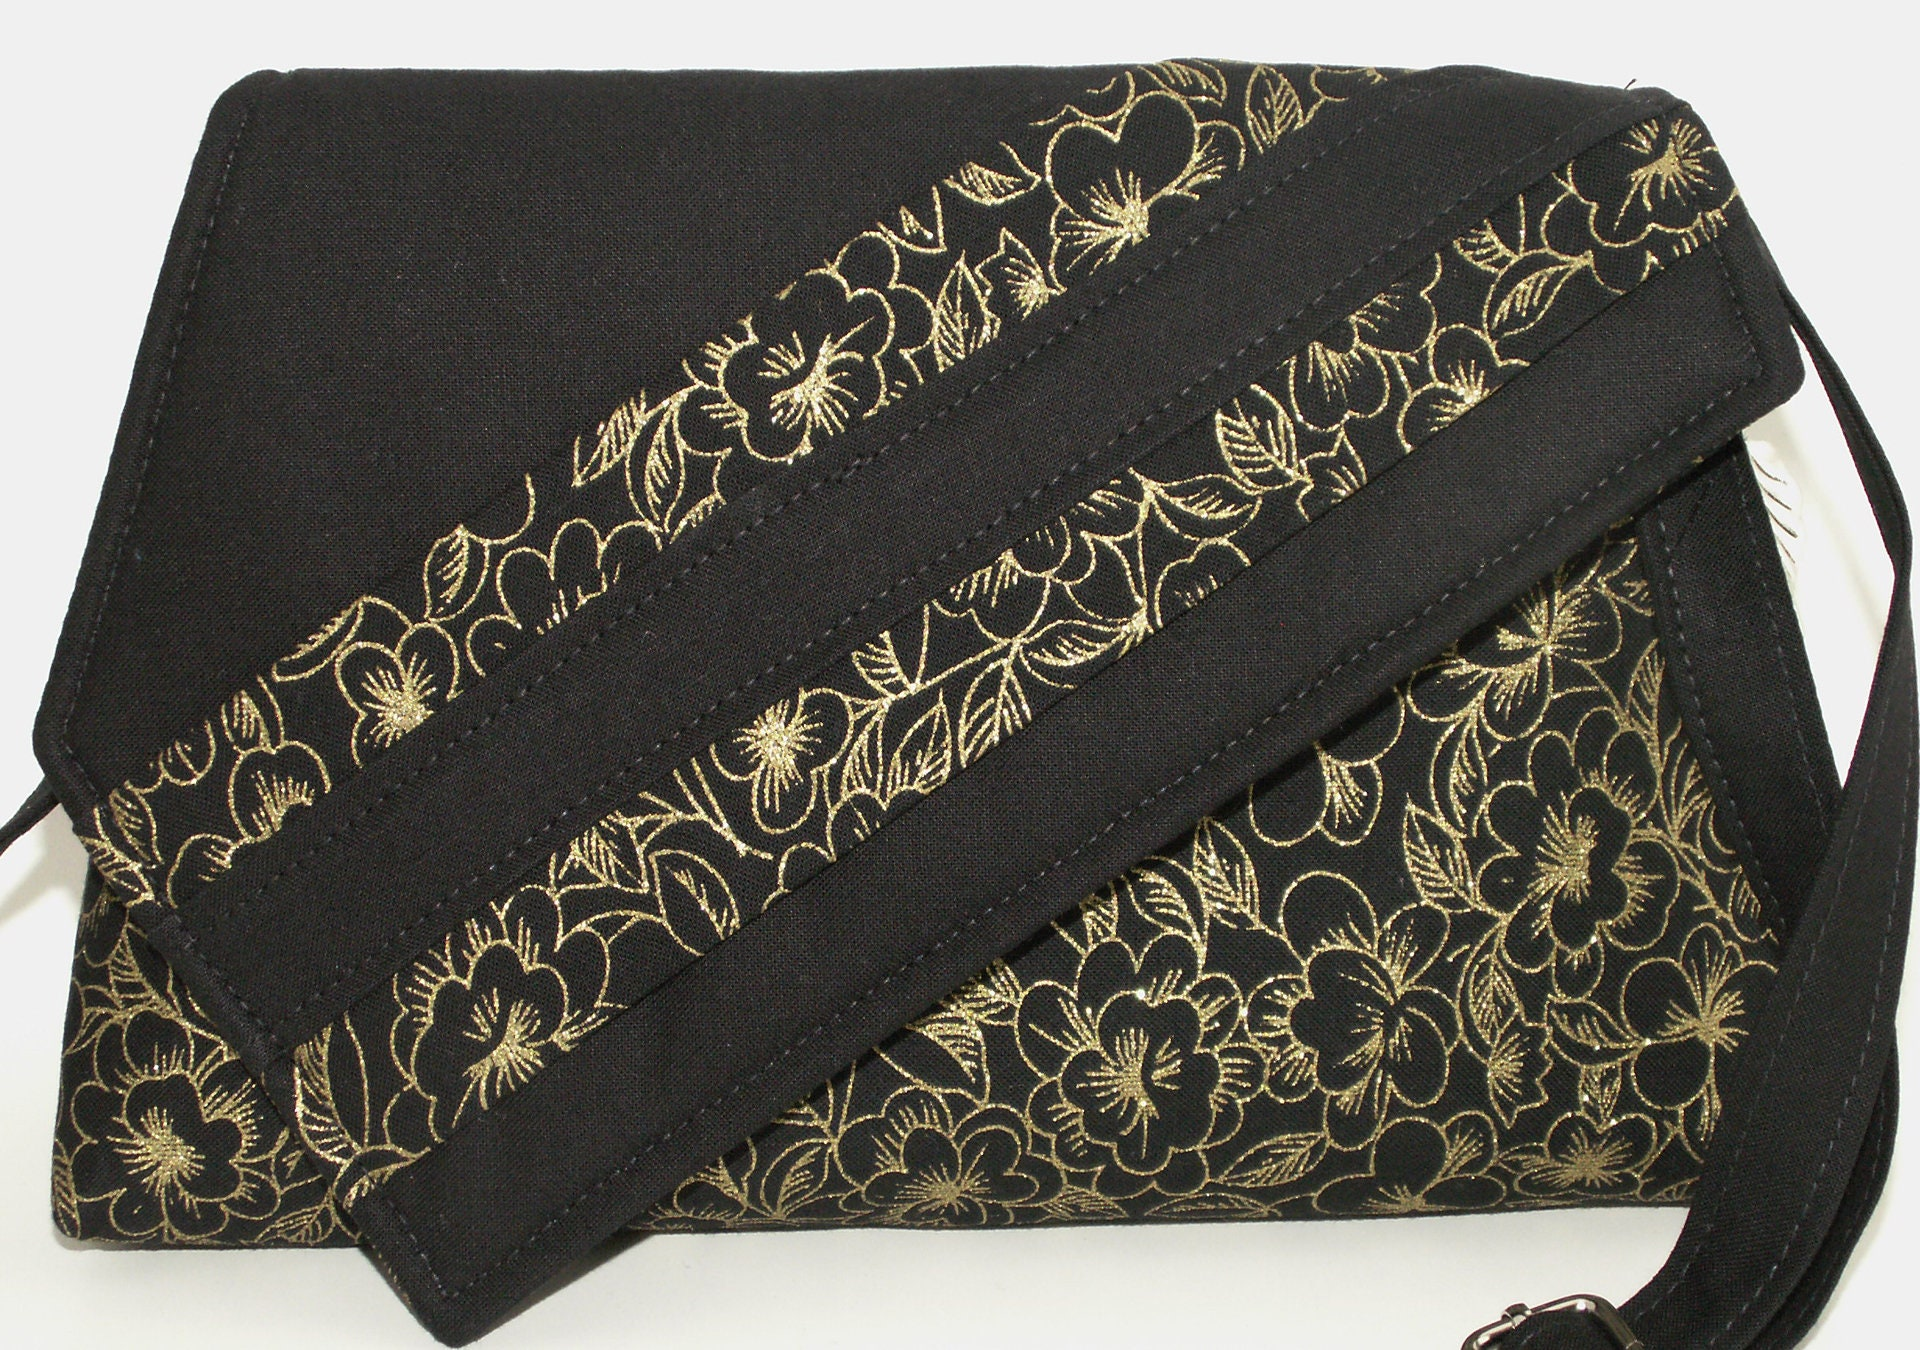 Handmade Cotton Shoulder Bag, Handbag. Black, Gold. Golden Garden Artisan  Bag By Lella Rae